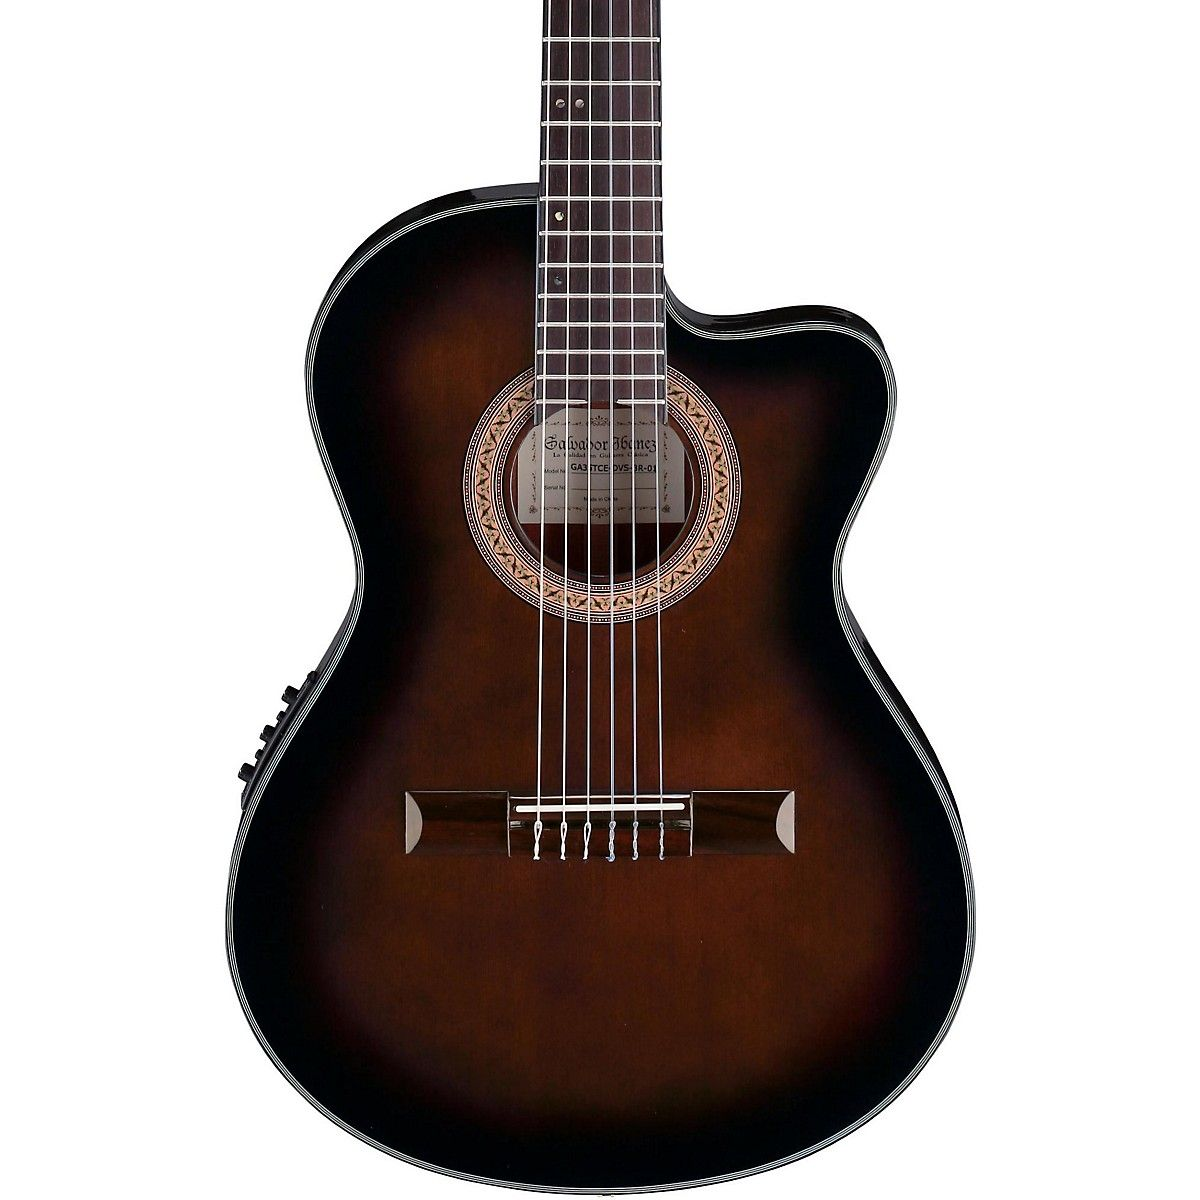 Ibanez Ga35 Thinline Acoustic Electric Classical Guitar Ovation Guitar Guitar Tuners Ibanez Guitars